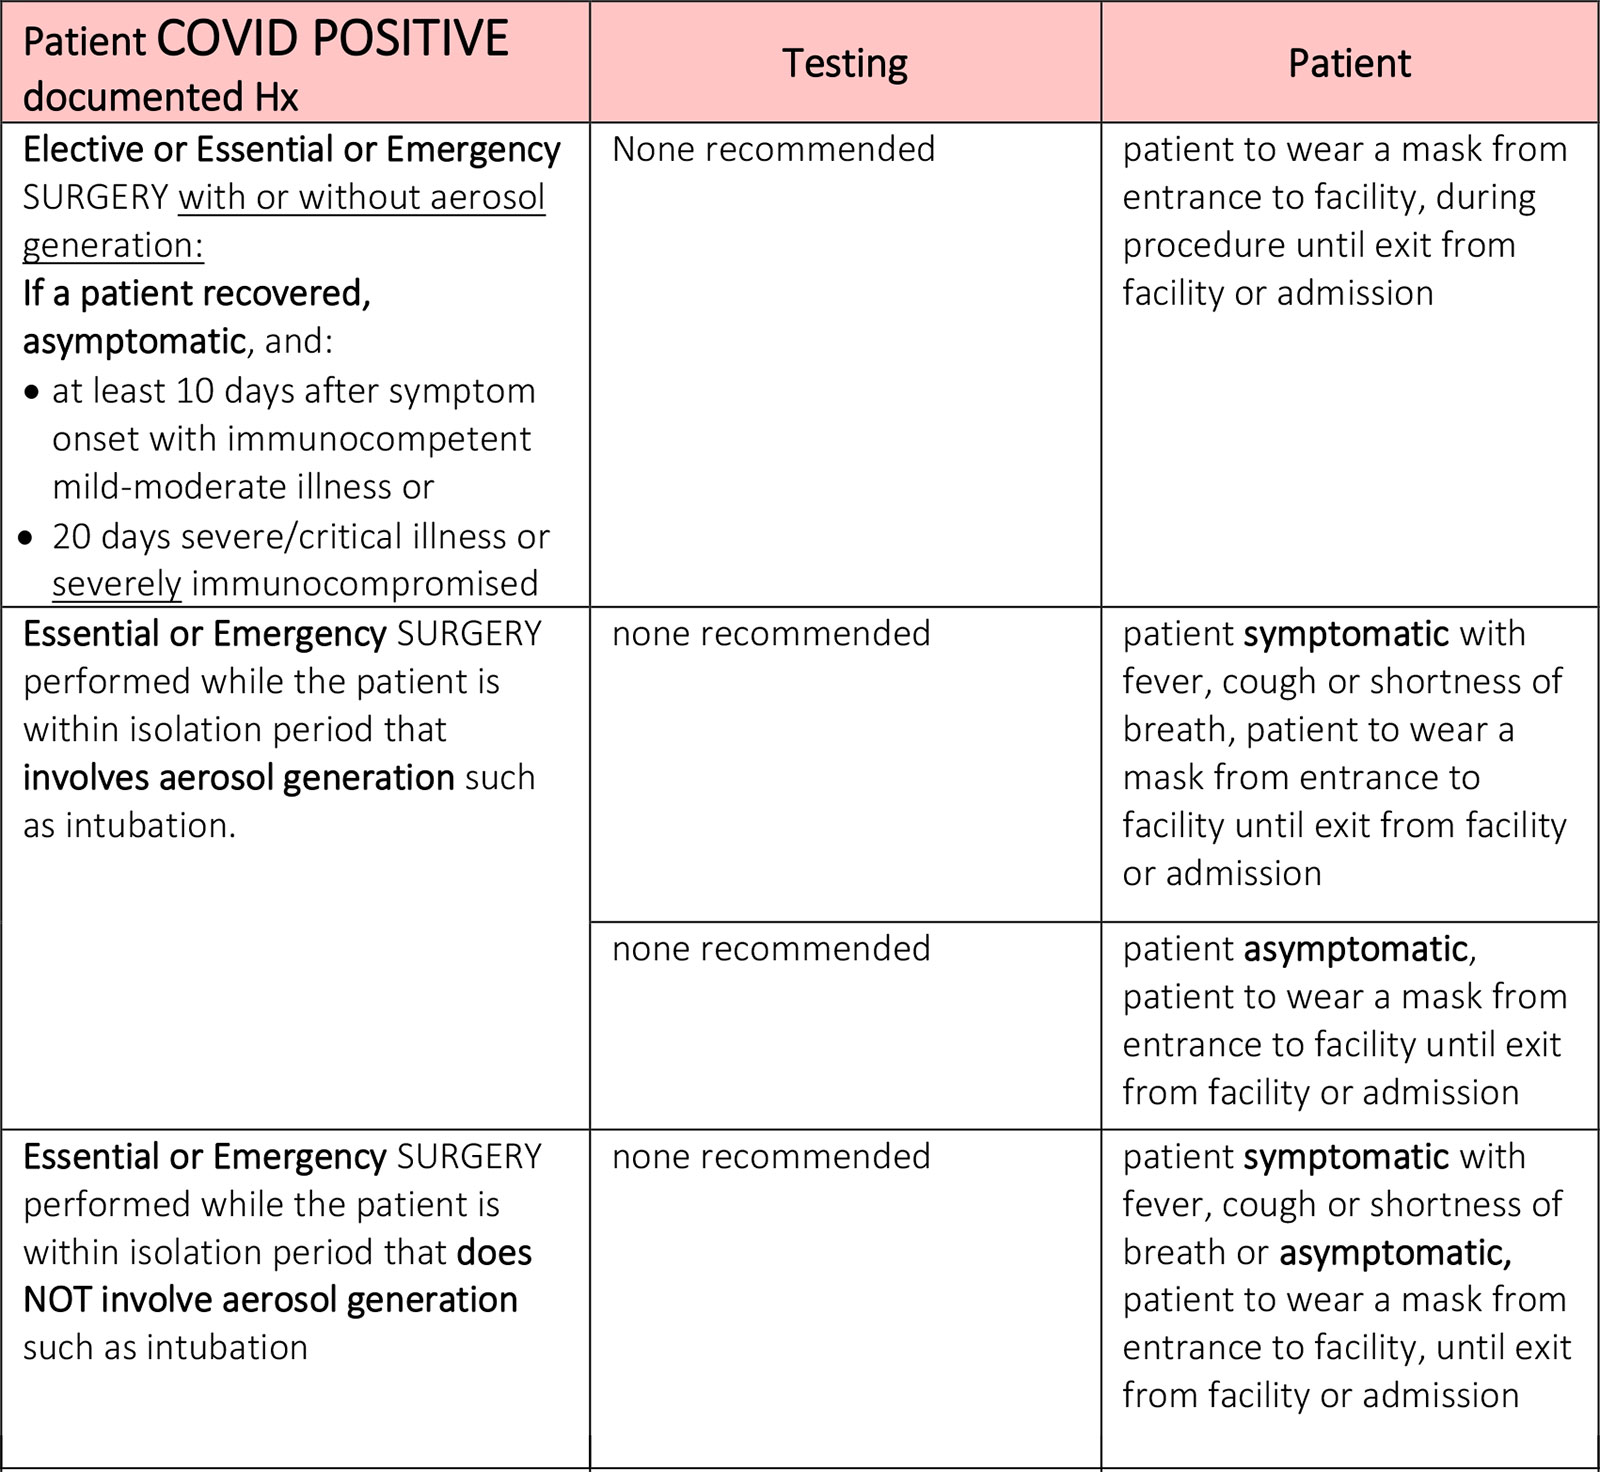 Patient COVID POSITIVE documented Hx